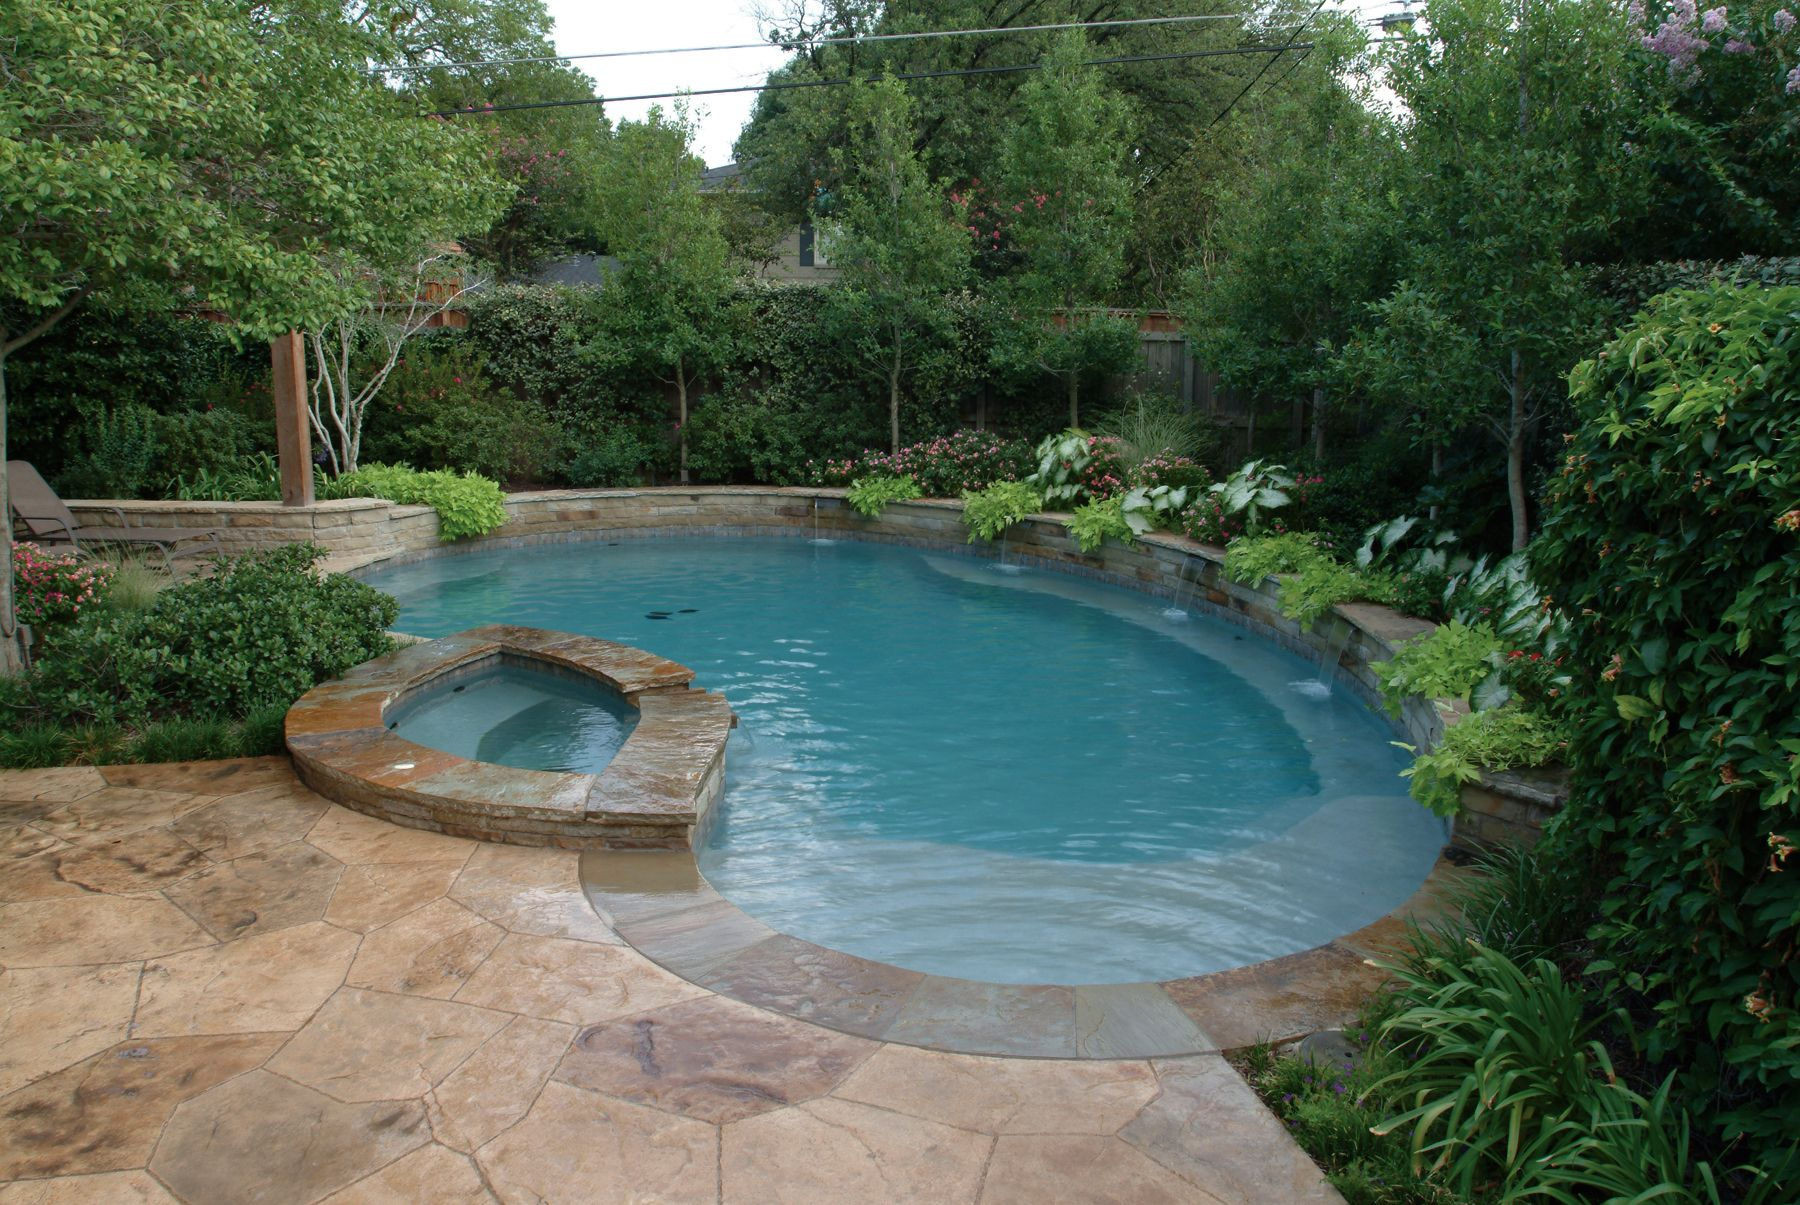 Inground Pool Designs Ideas swimming pool design ideas and prices best small inground pool designs ideas interior exterior colors best concept Small Backyard Inground Pool Design Small Backyard Pool Woohome 13 Outdoor Inspiration Tasteful Oval Small Inground